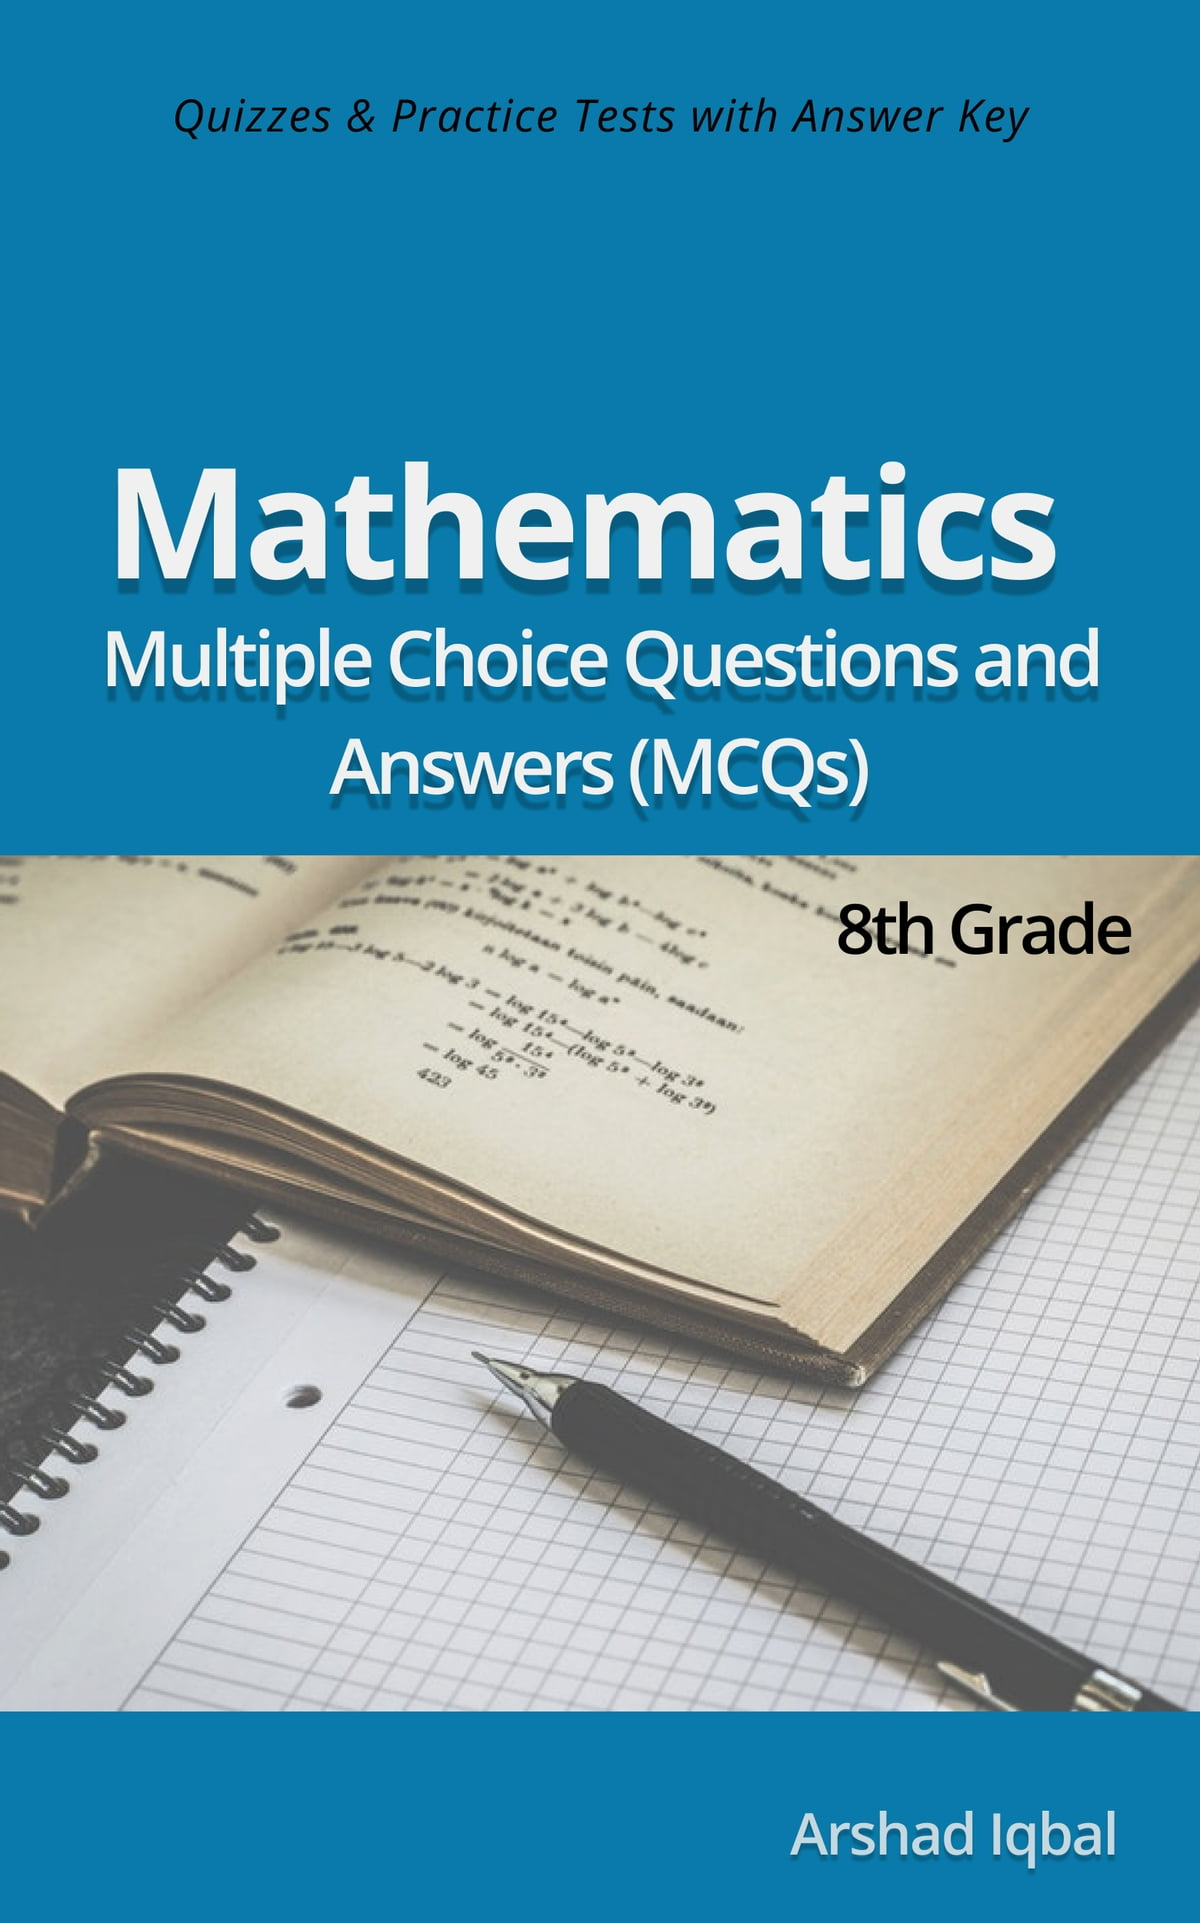 hight resolution of 8th Grade Math Multiple Choice Questions and Answers (MCQs): Quizzes \u0026  Practice Tests with Answer Key (Grade 8 Math Worksheets \u0026 Quick Study  Guide) eBook by Arshad Iqbal - 9781310500046   Rakuten Kobo United States